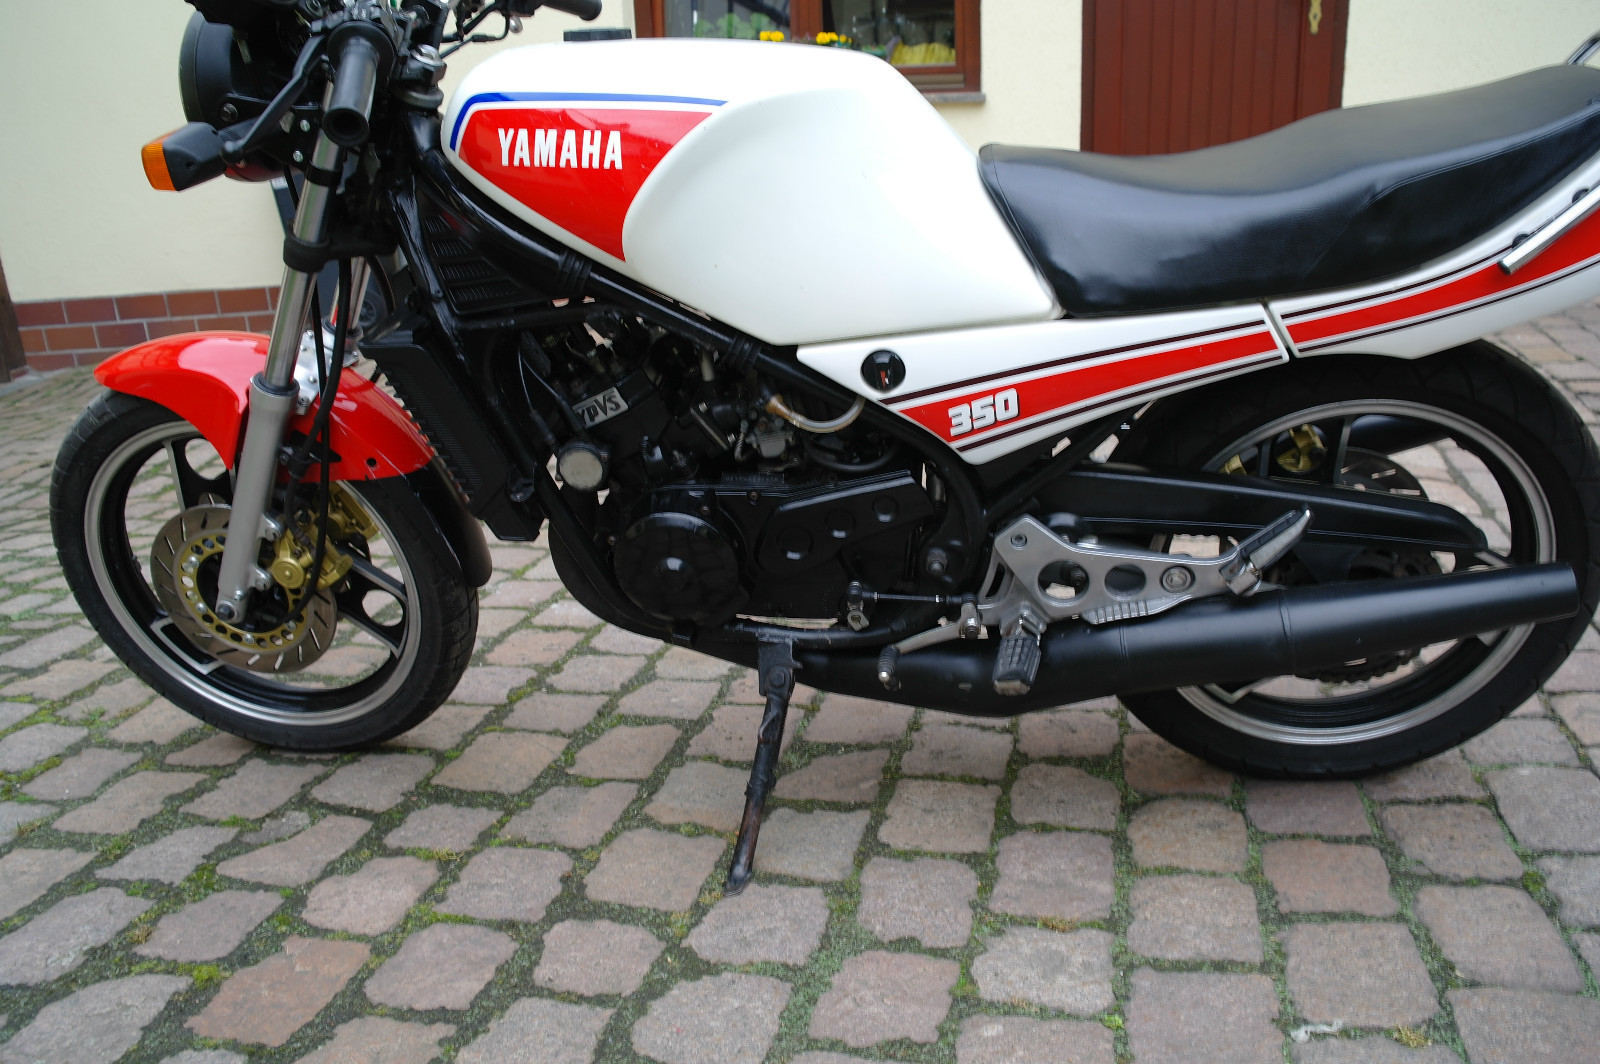 Yamaha RD 350 F (reduced effect) 1986 #11